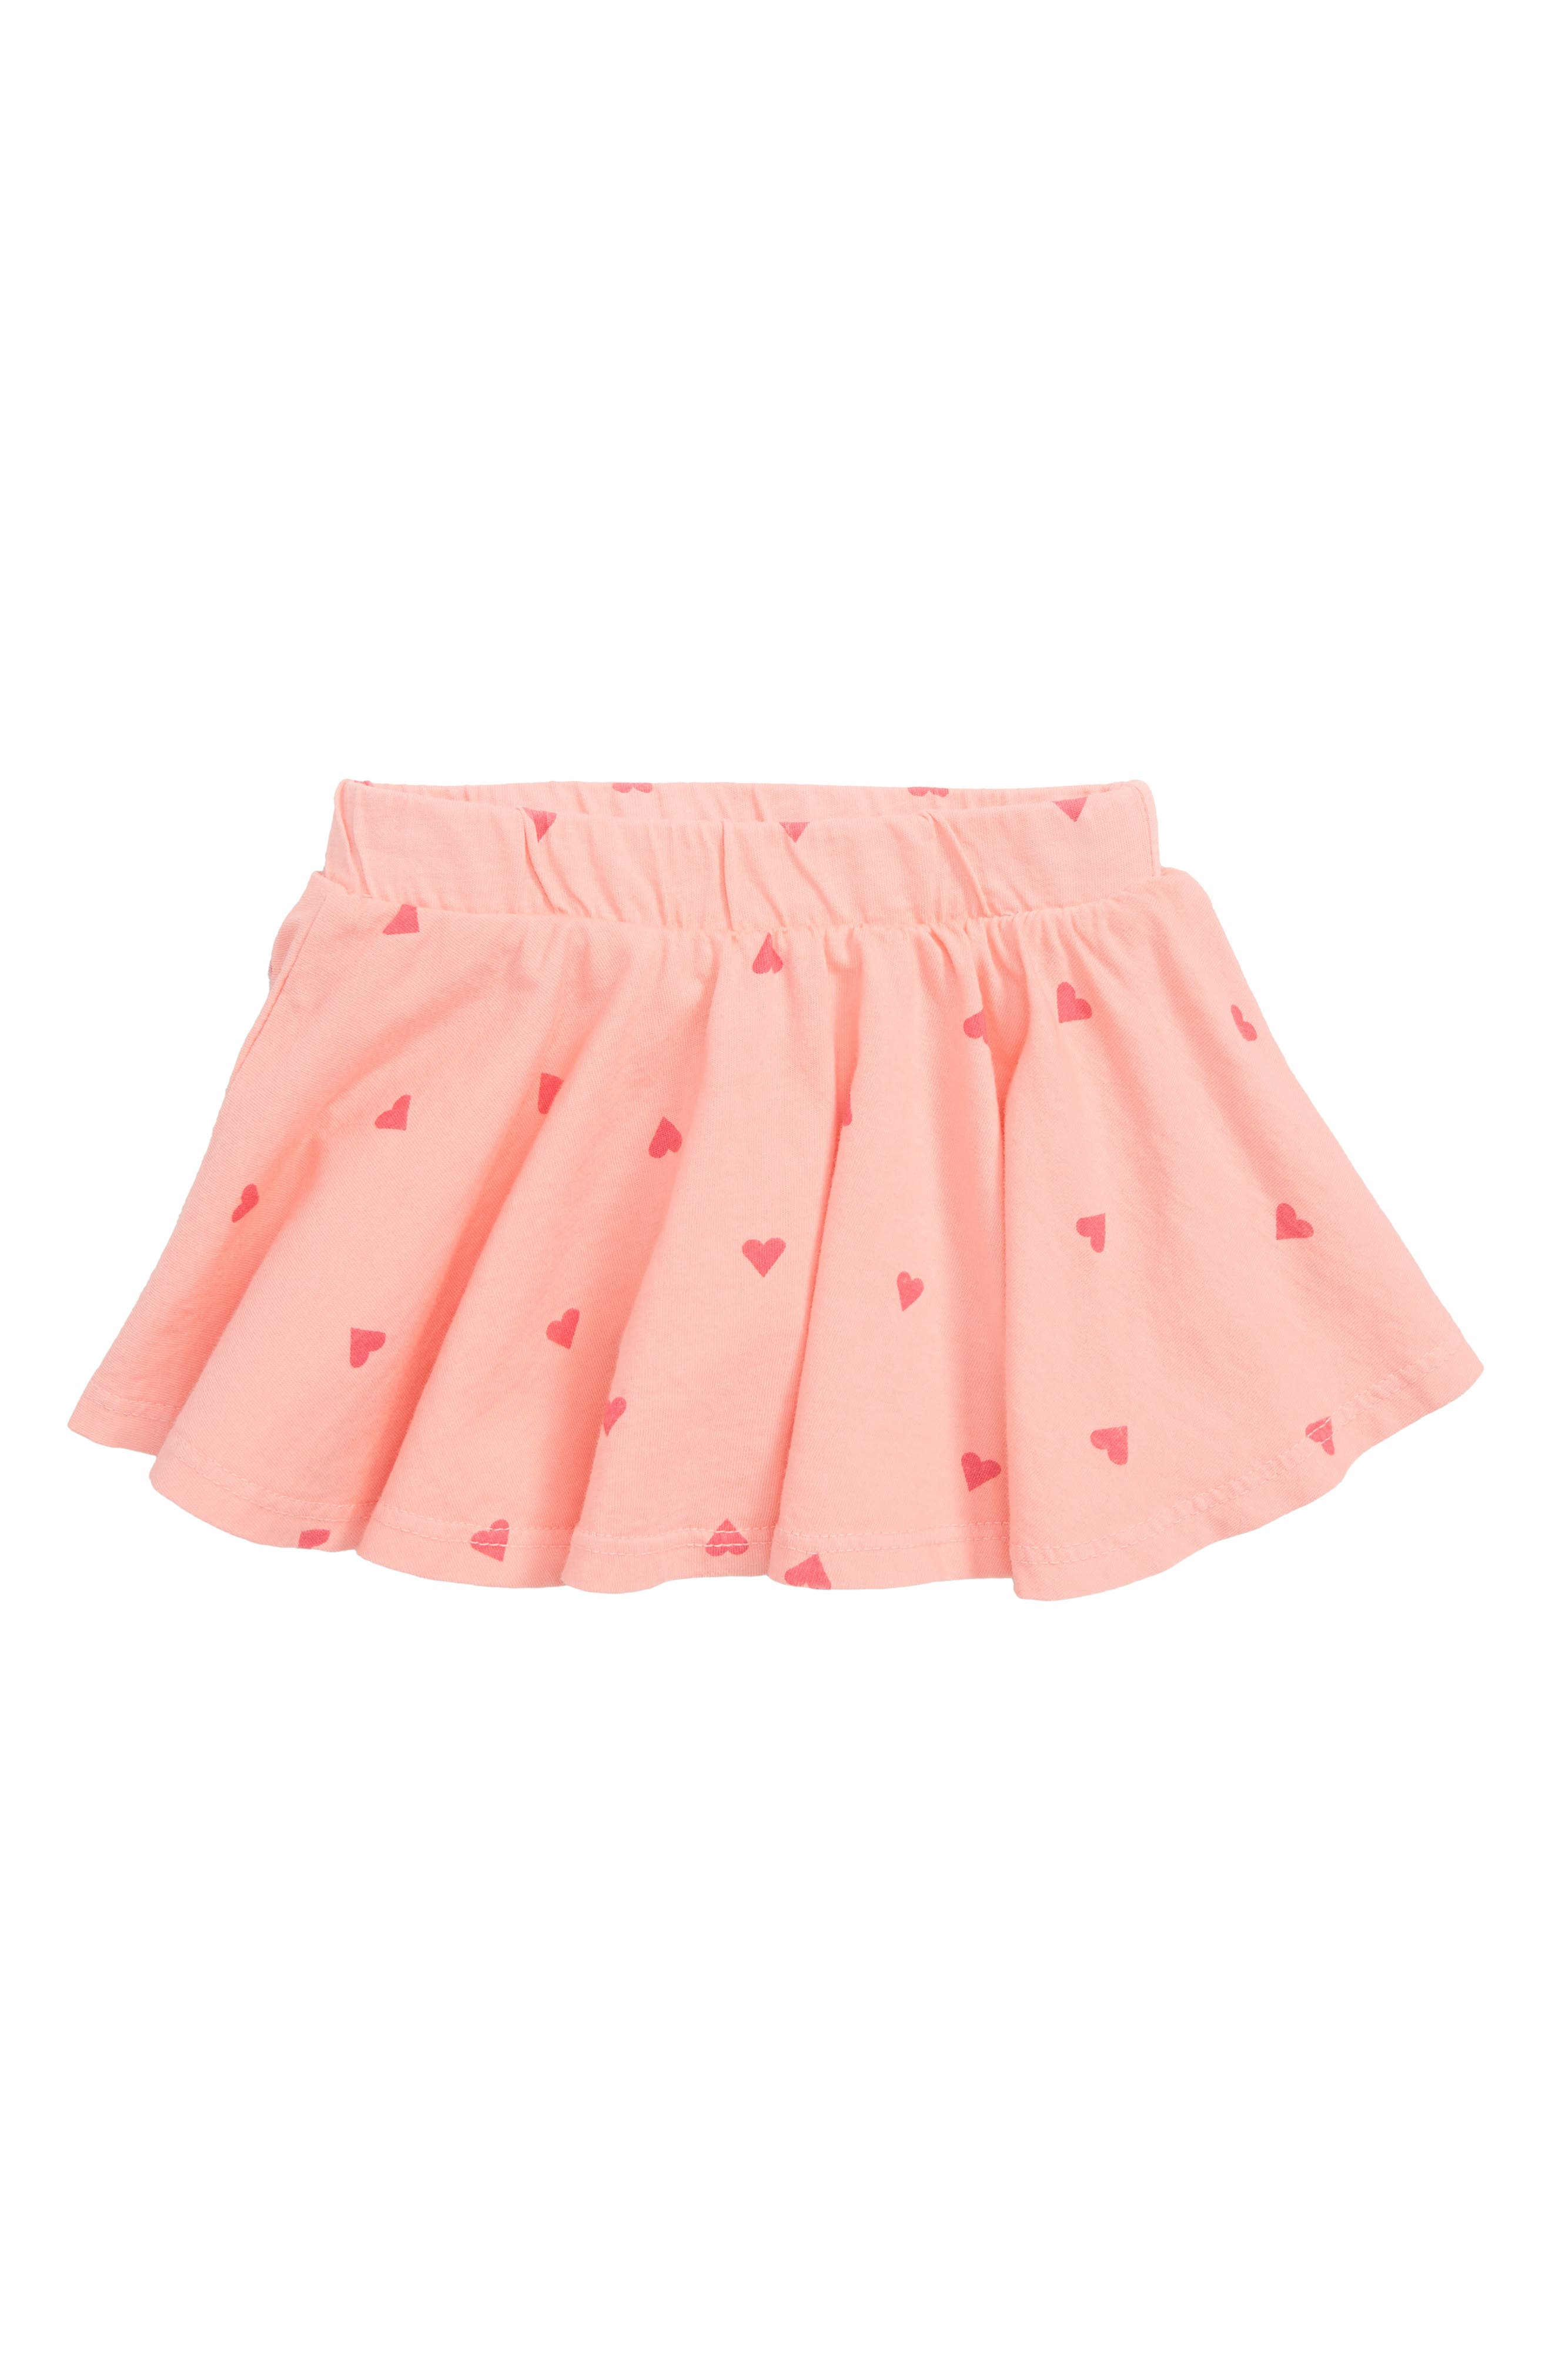 Joah Love Lyric Skort (Baby Girls)